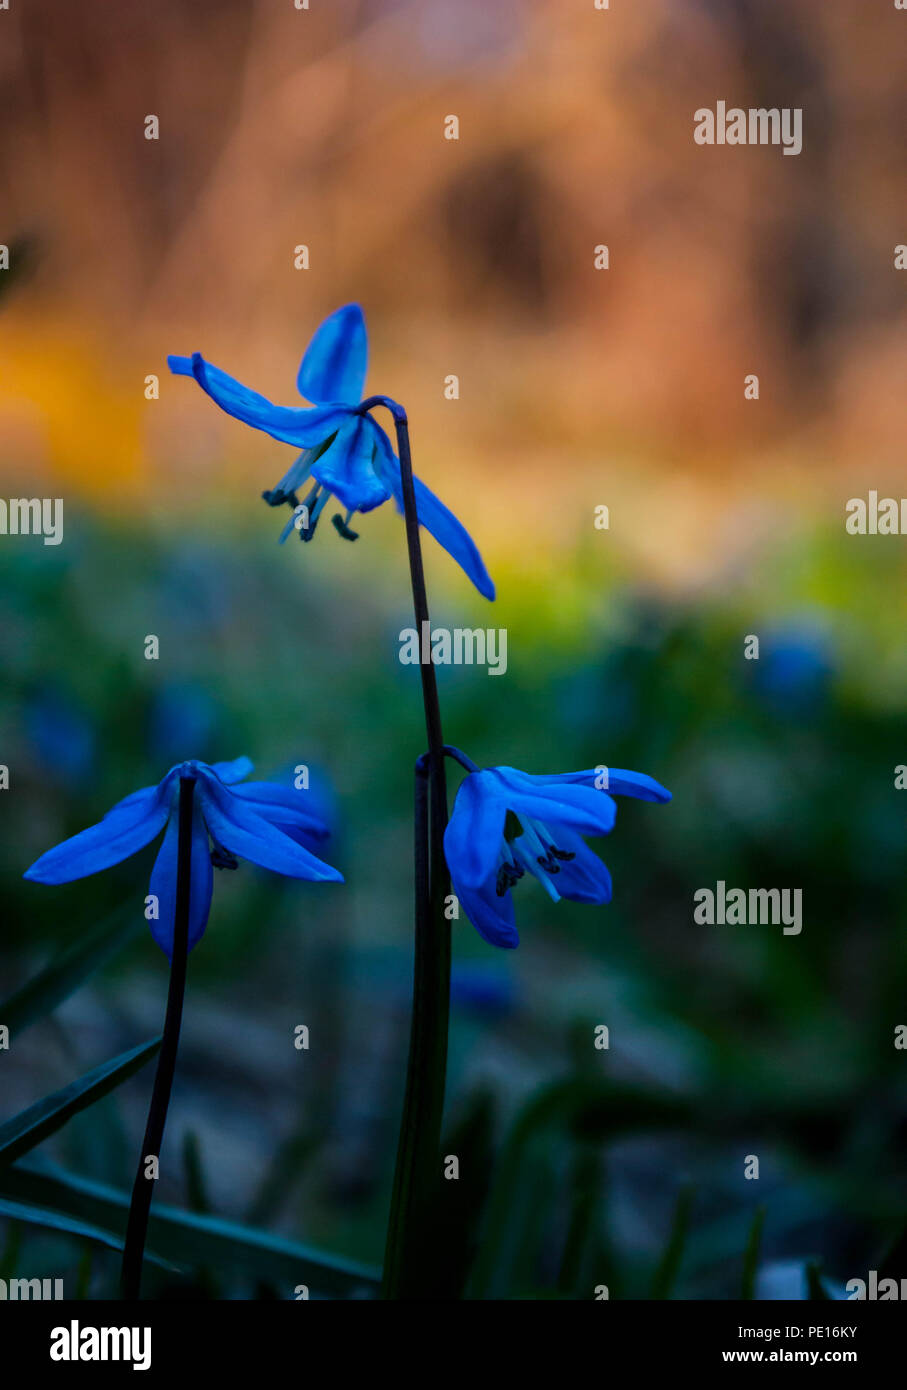 Blue snowdrop flowers growing in the forest in spring with textspace - Stock Image